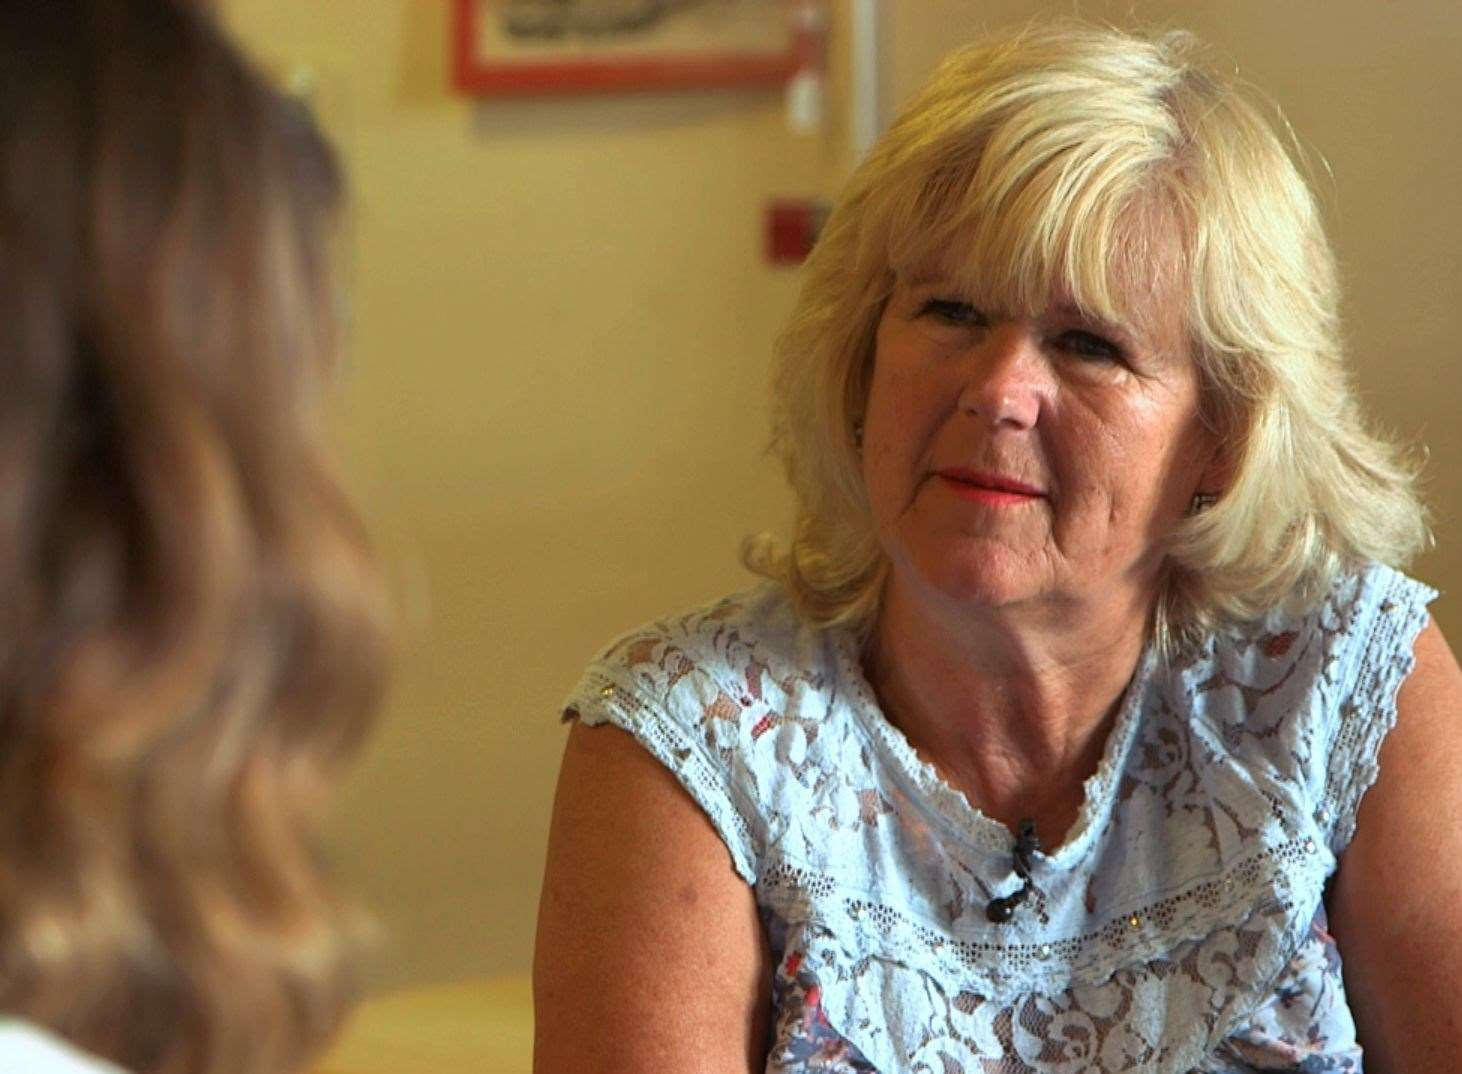 Tracy Carr and the wellbeing cafe which she founded will feature in a TV documentary tonight